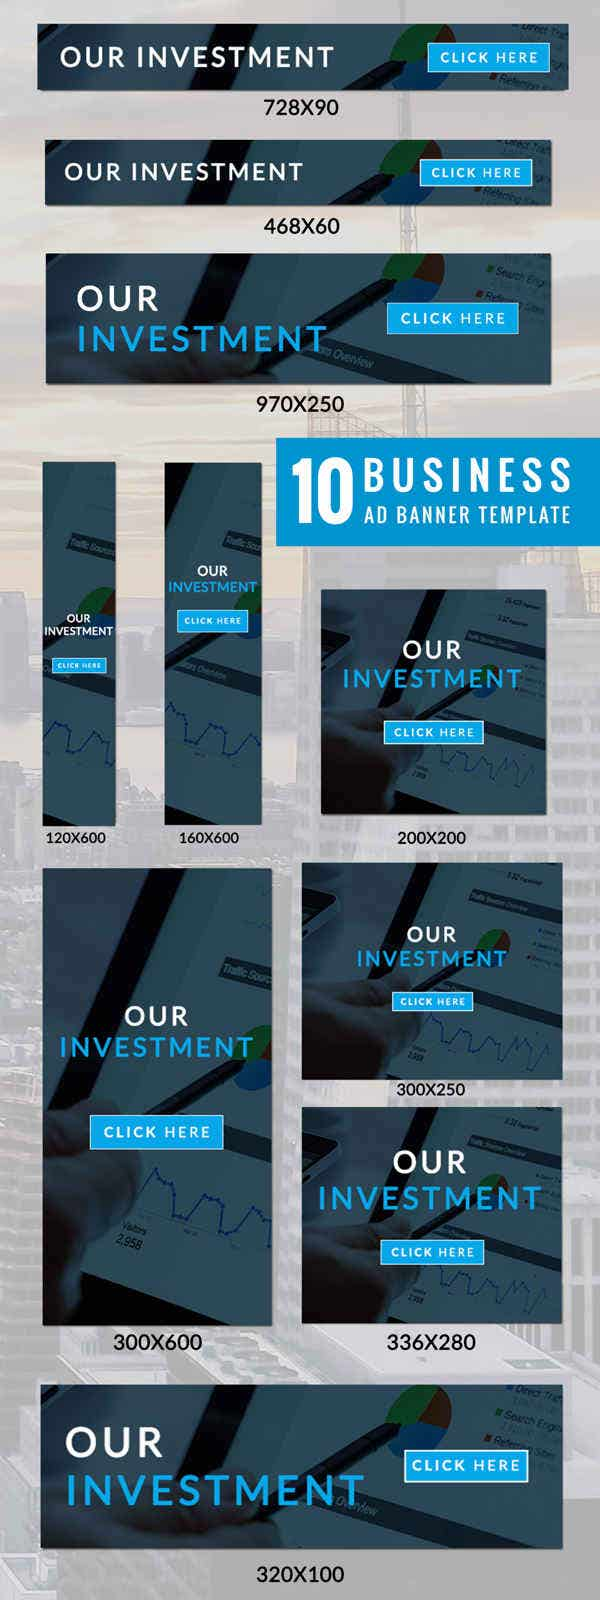 99 ad banner templates business fashion promotional ad banner templates